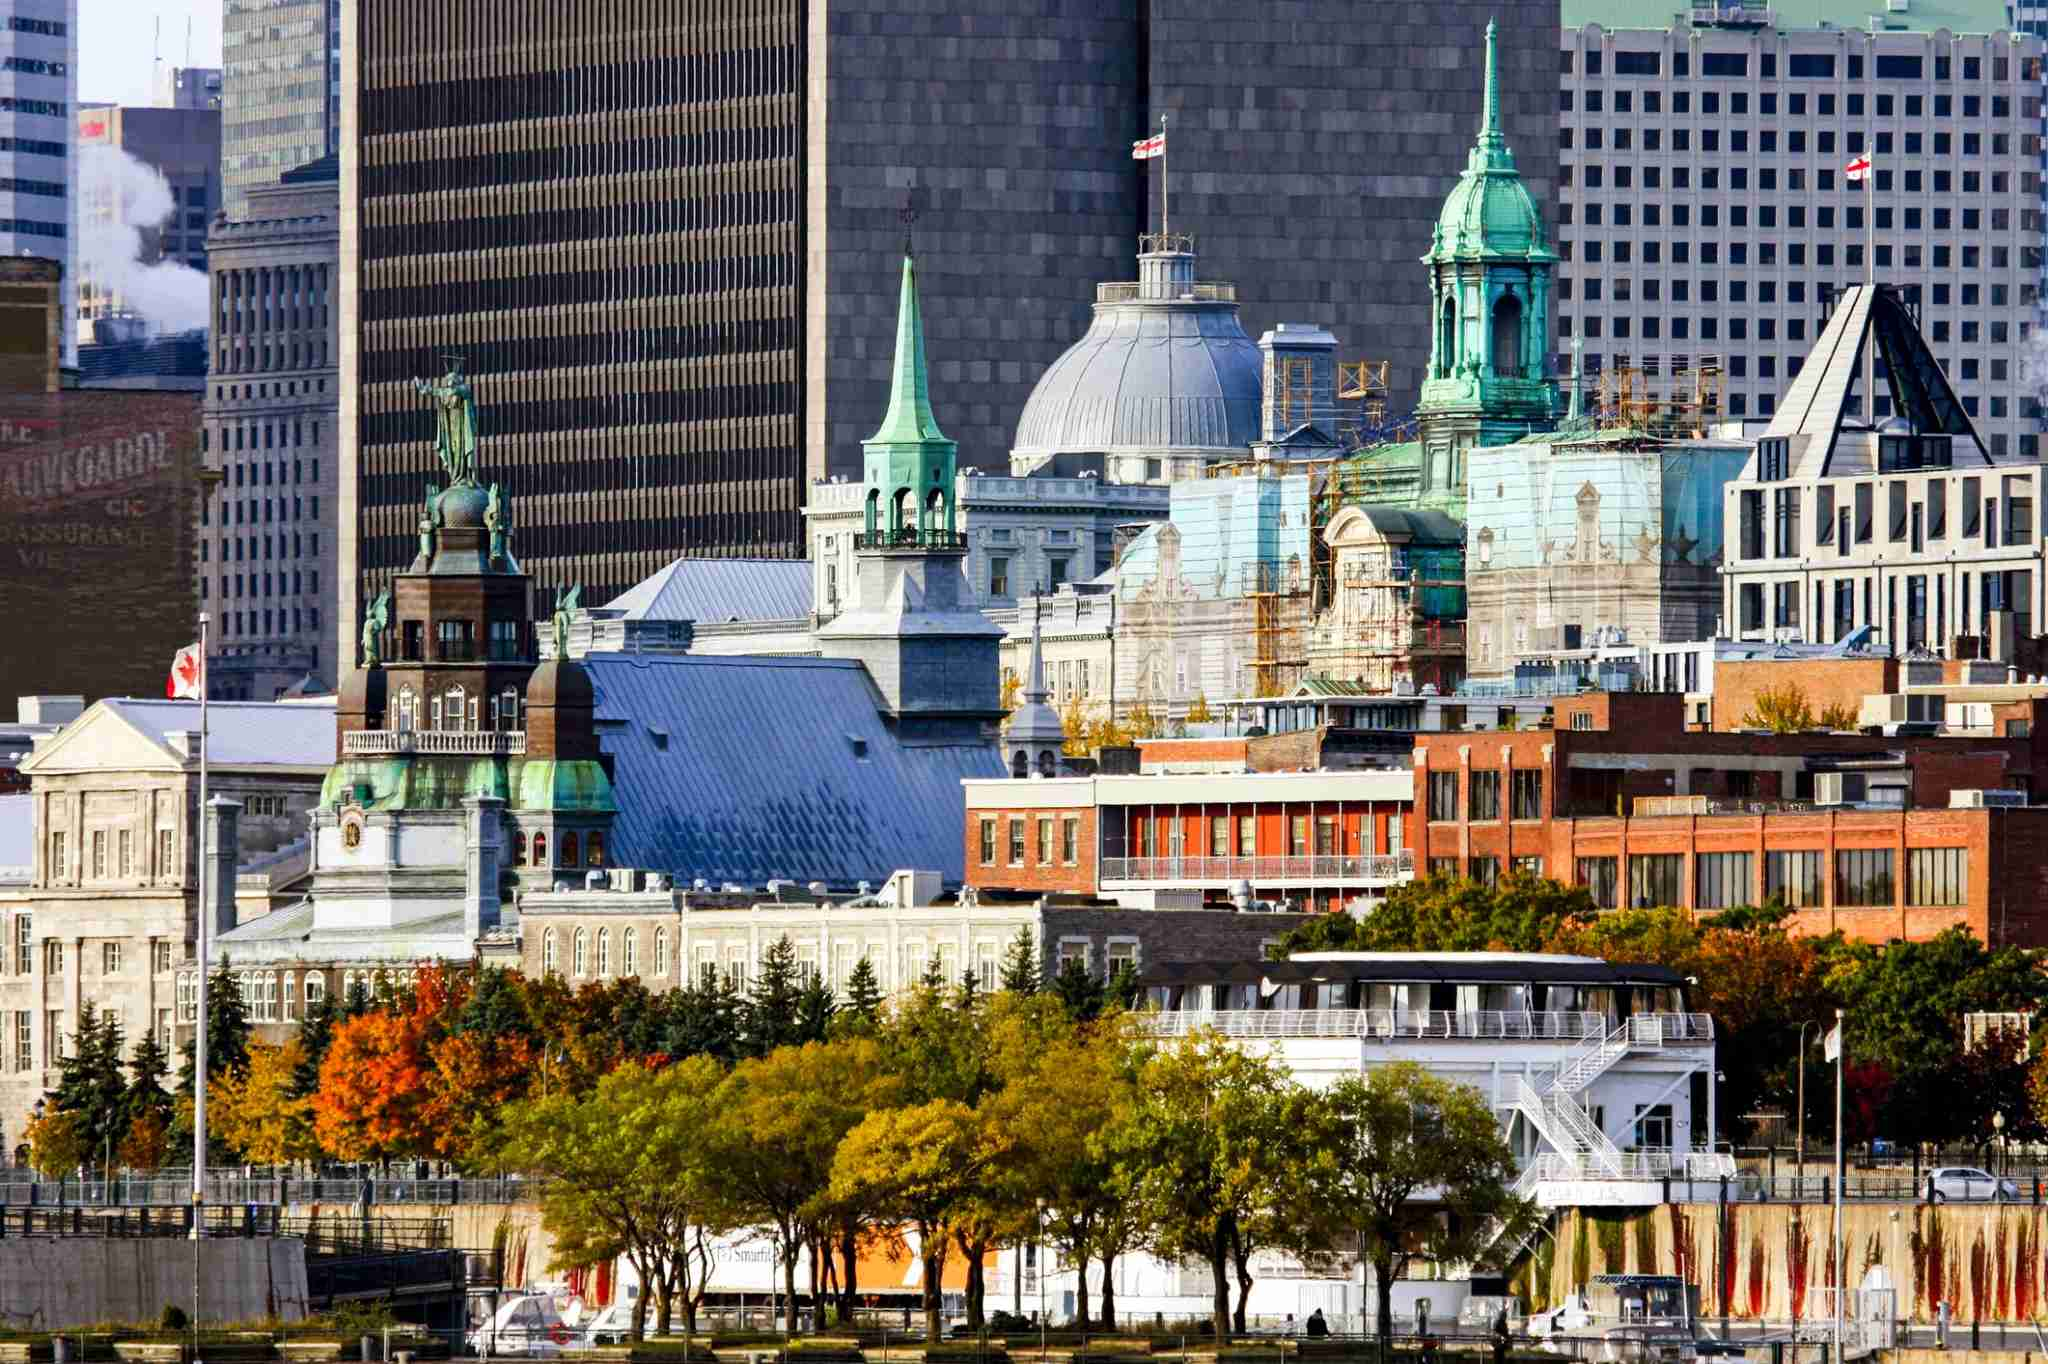 Image of Montreal in fall by Raffi Maghdessian / Getty Images.